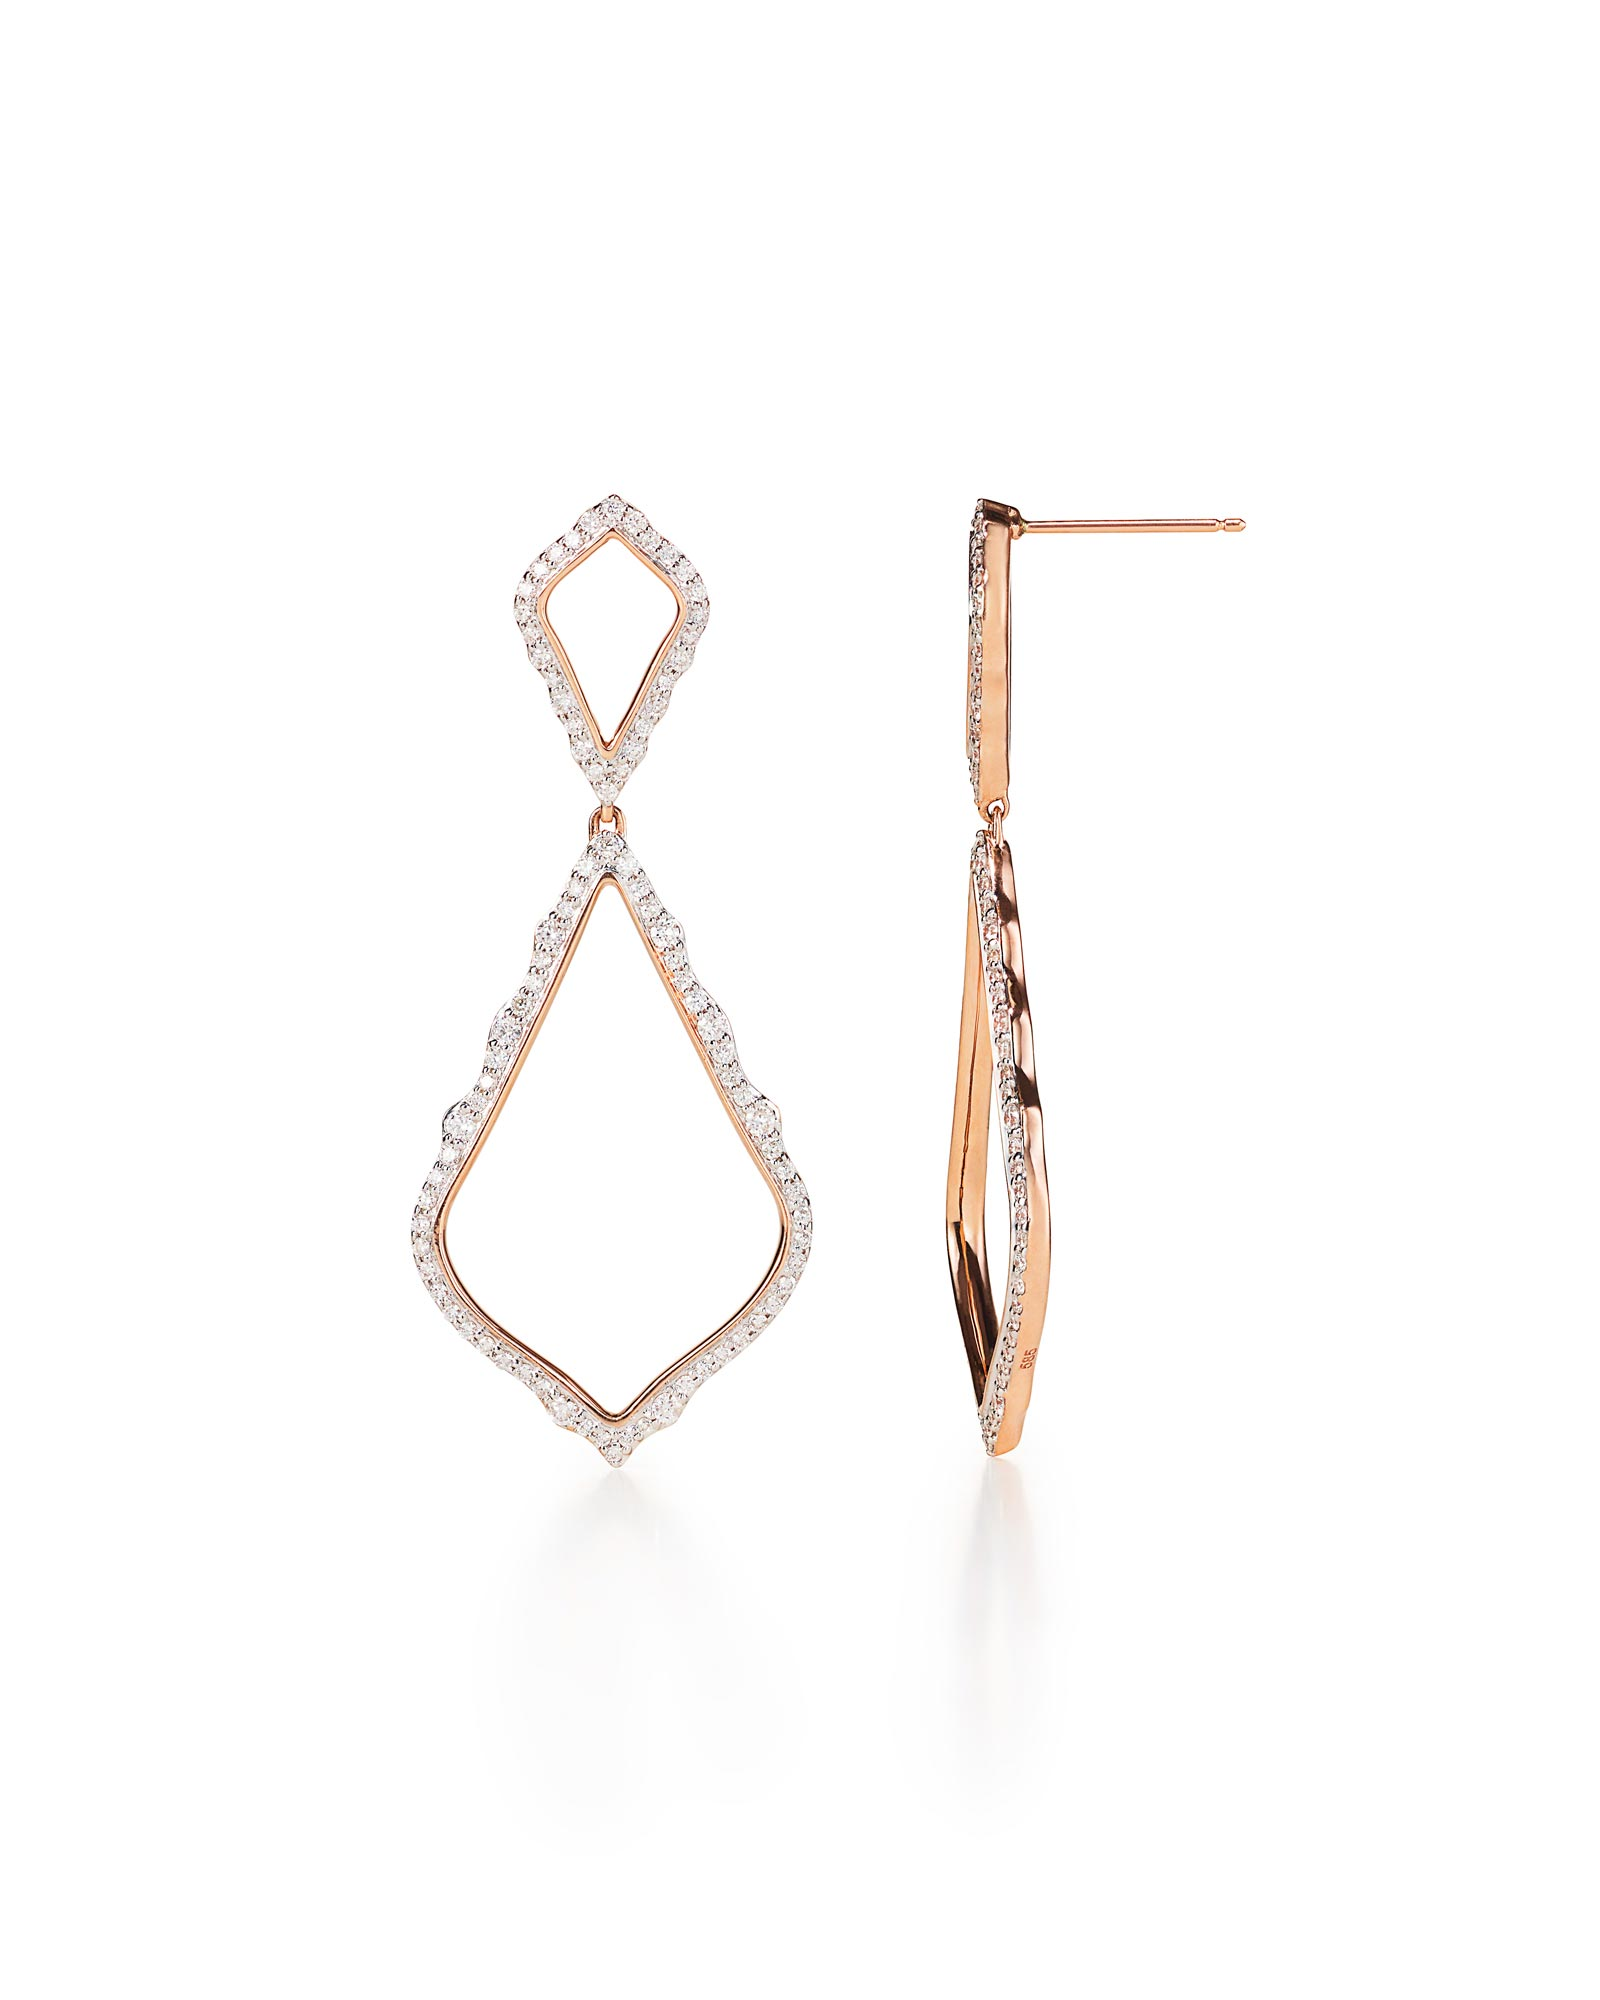 Alexa Statement Earrings in Pave Diamond and 14k Rose Gold